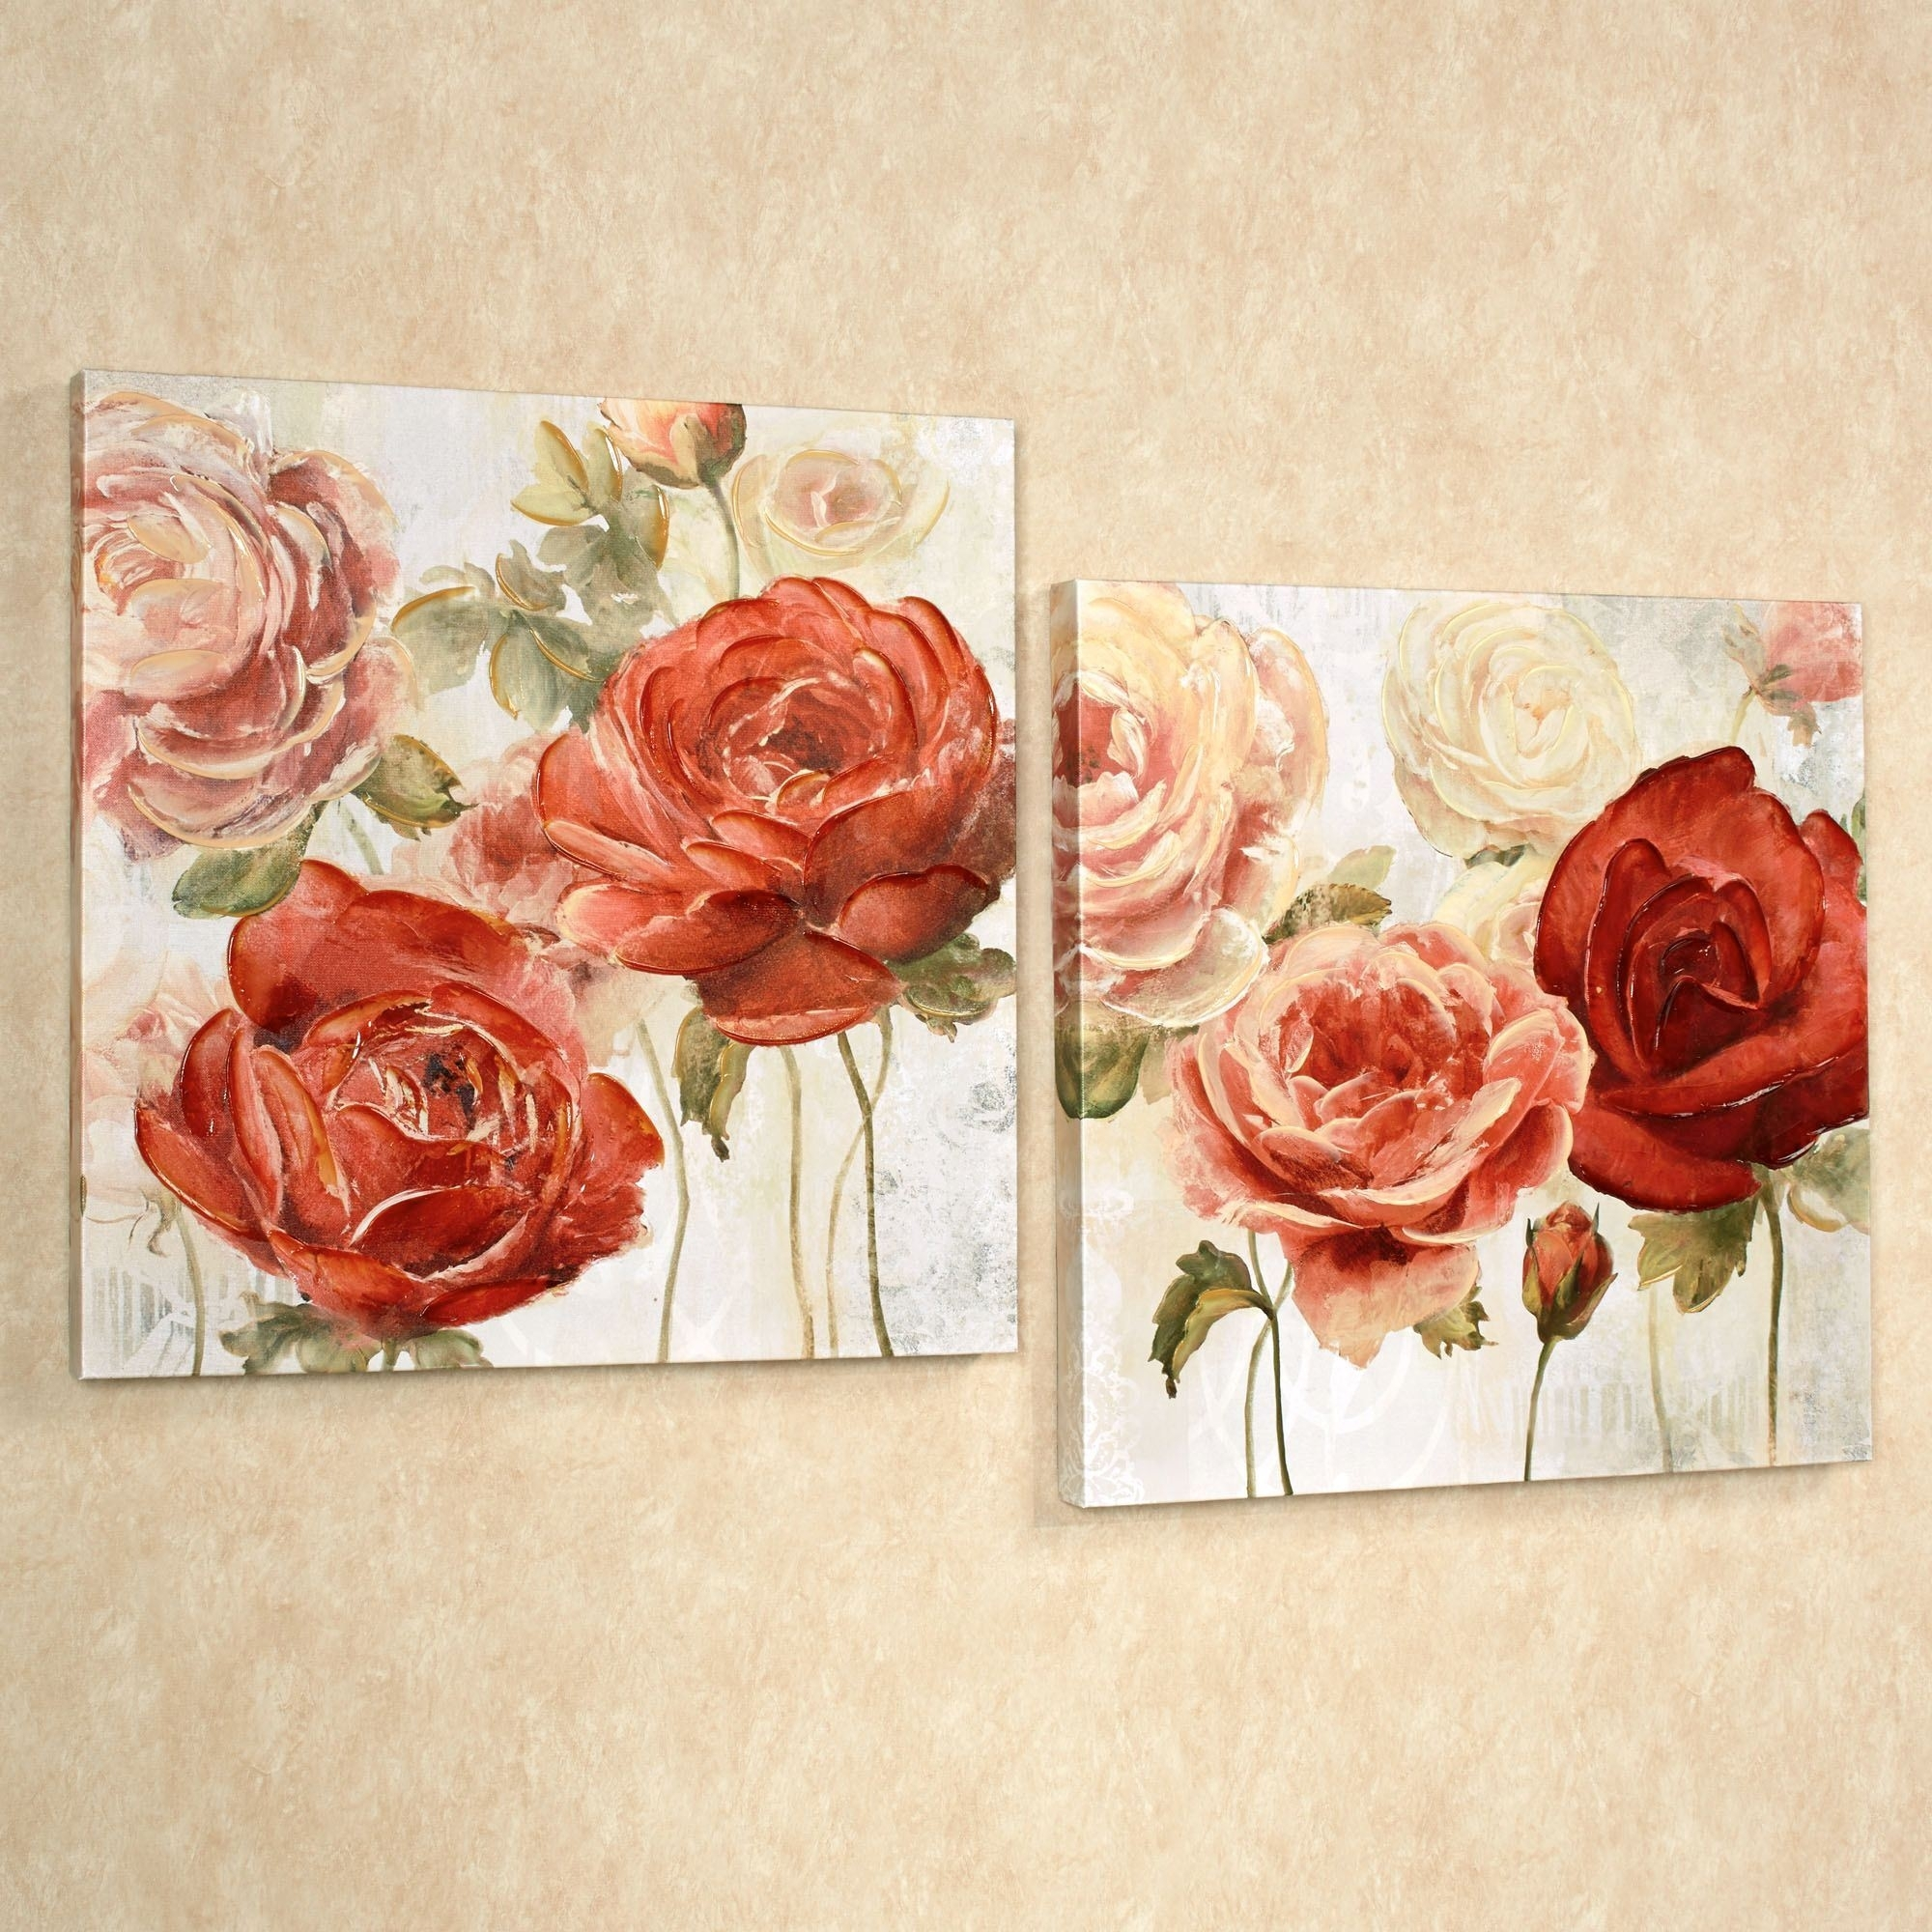 Radiant Blooms Rose Floral Canvas Wall Art Set Inside Most Recently Released Roses Canvas Wall Art (View 5 of 15)